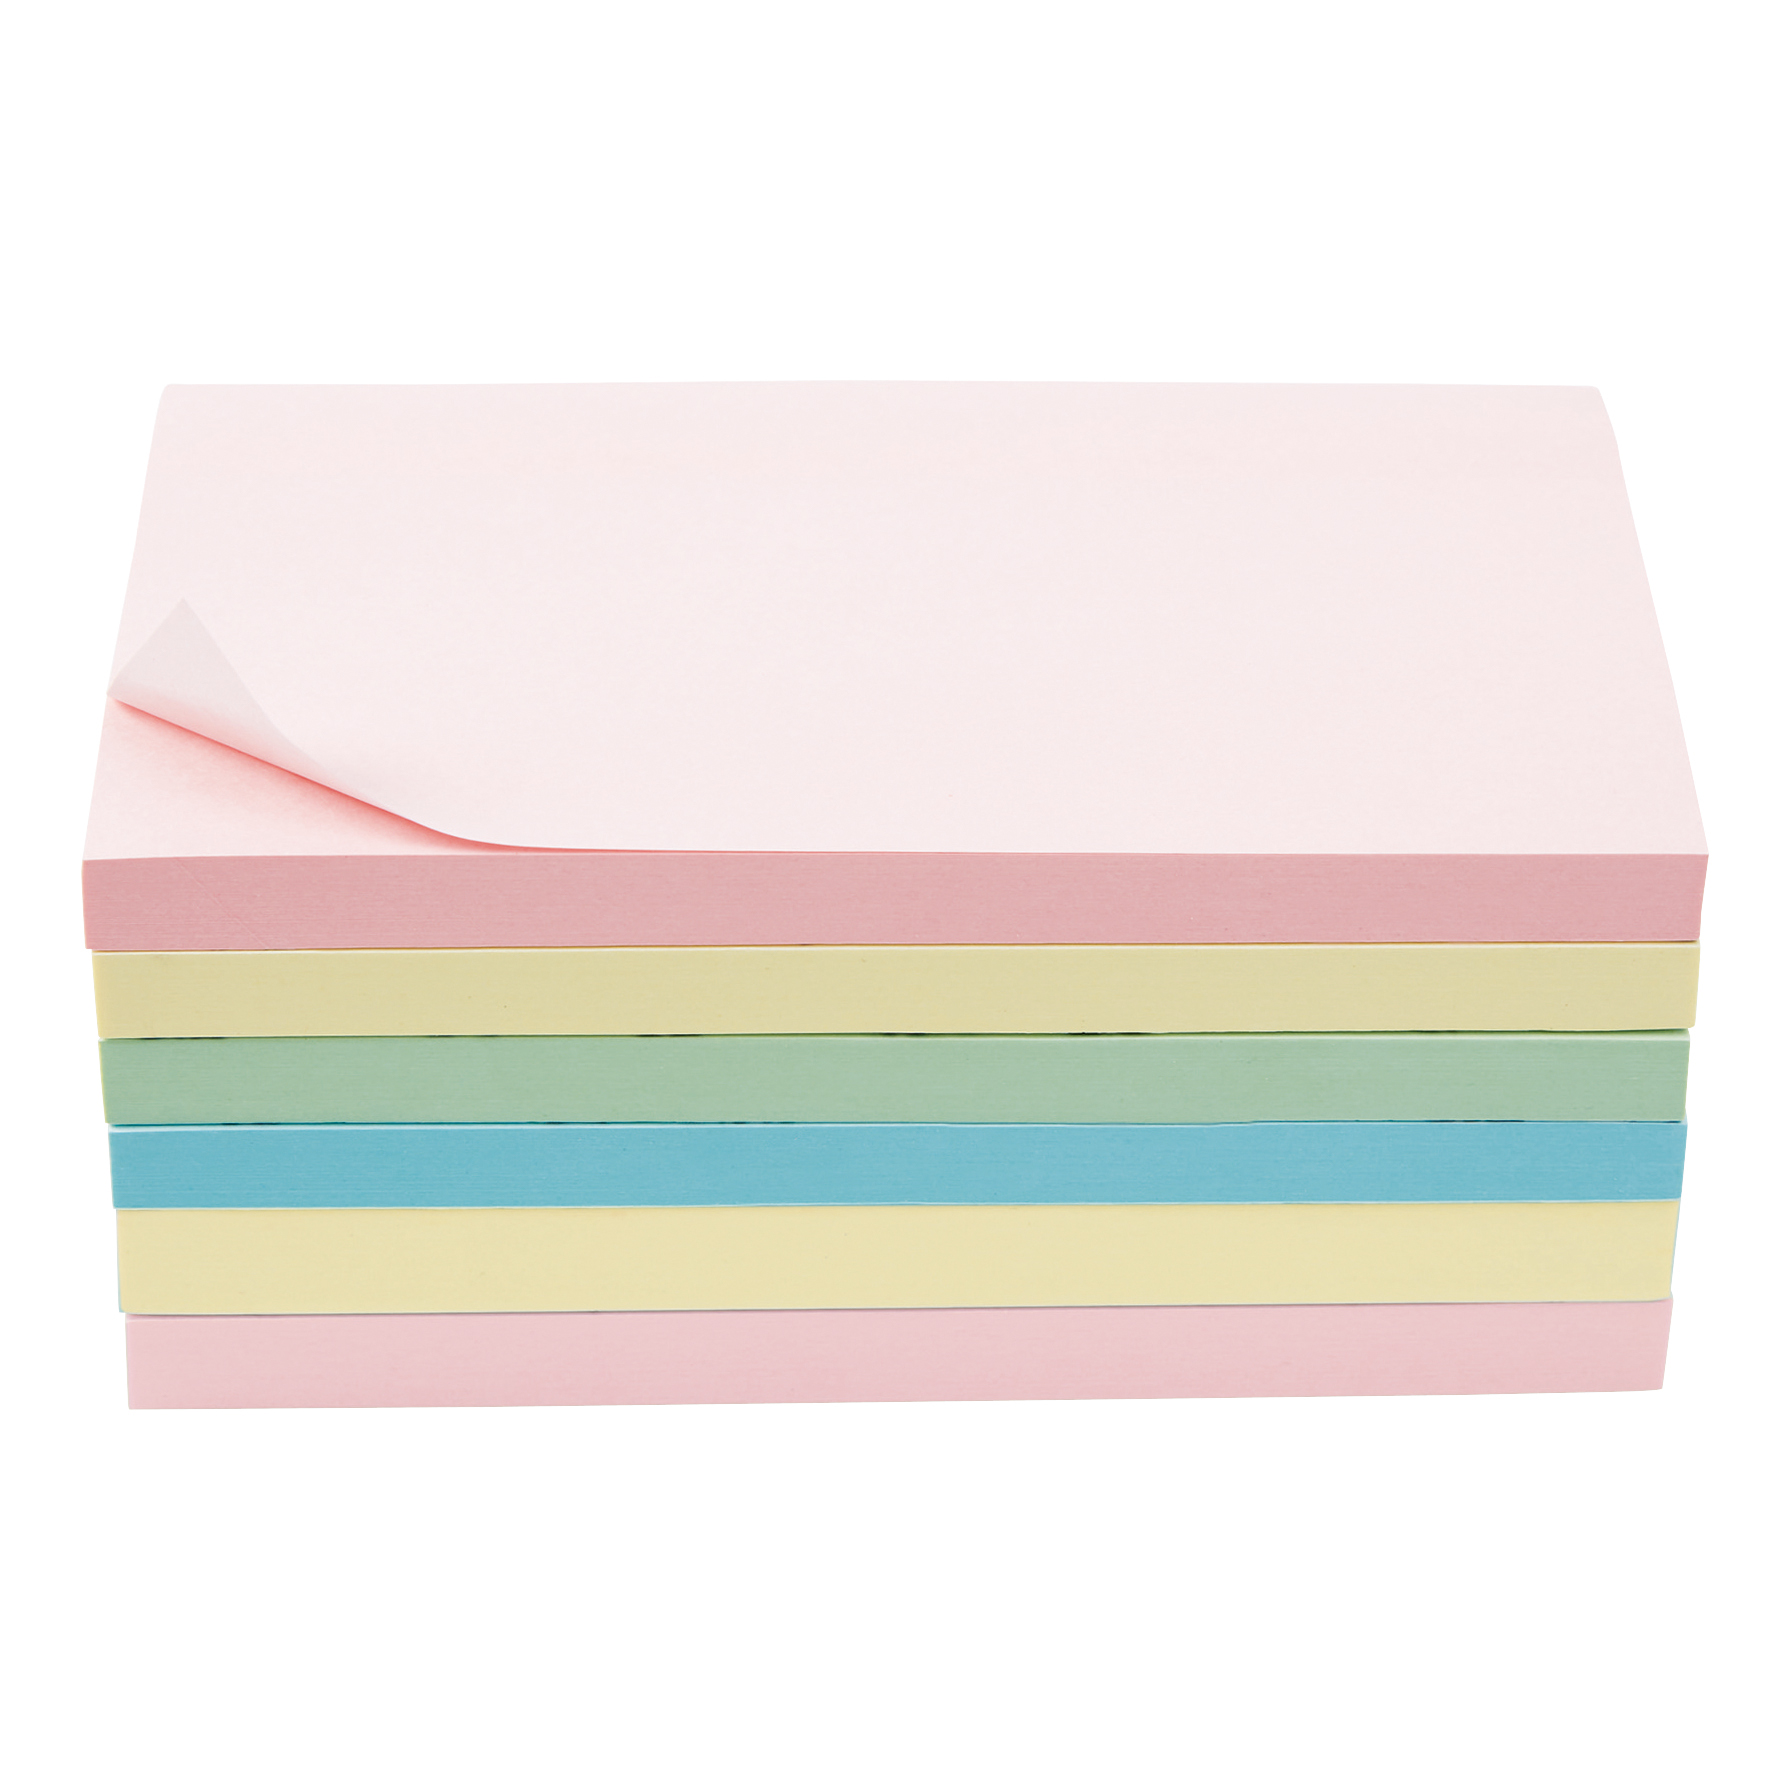 Coloured 5 Star Office Extra Sticky Re-Move Notes Pad of 90 Sheets 76x127mm 4 Assorted Pastel Colours Pack 6